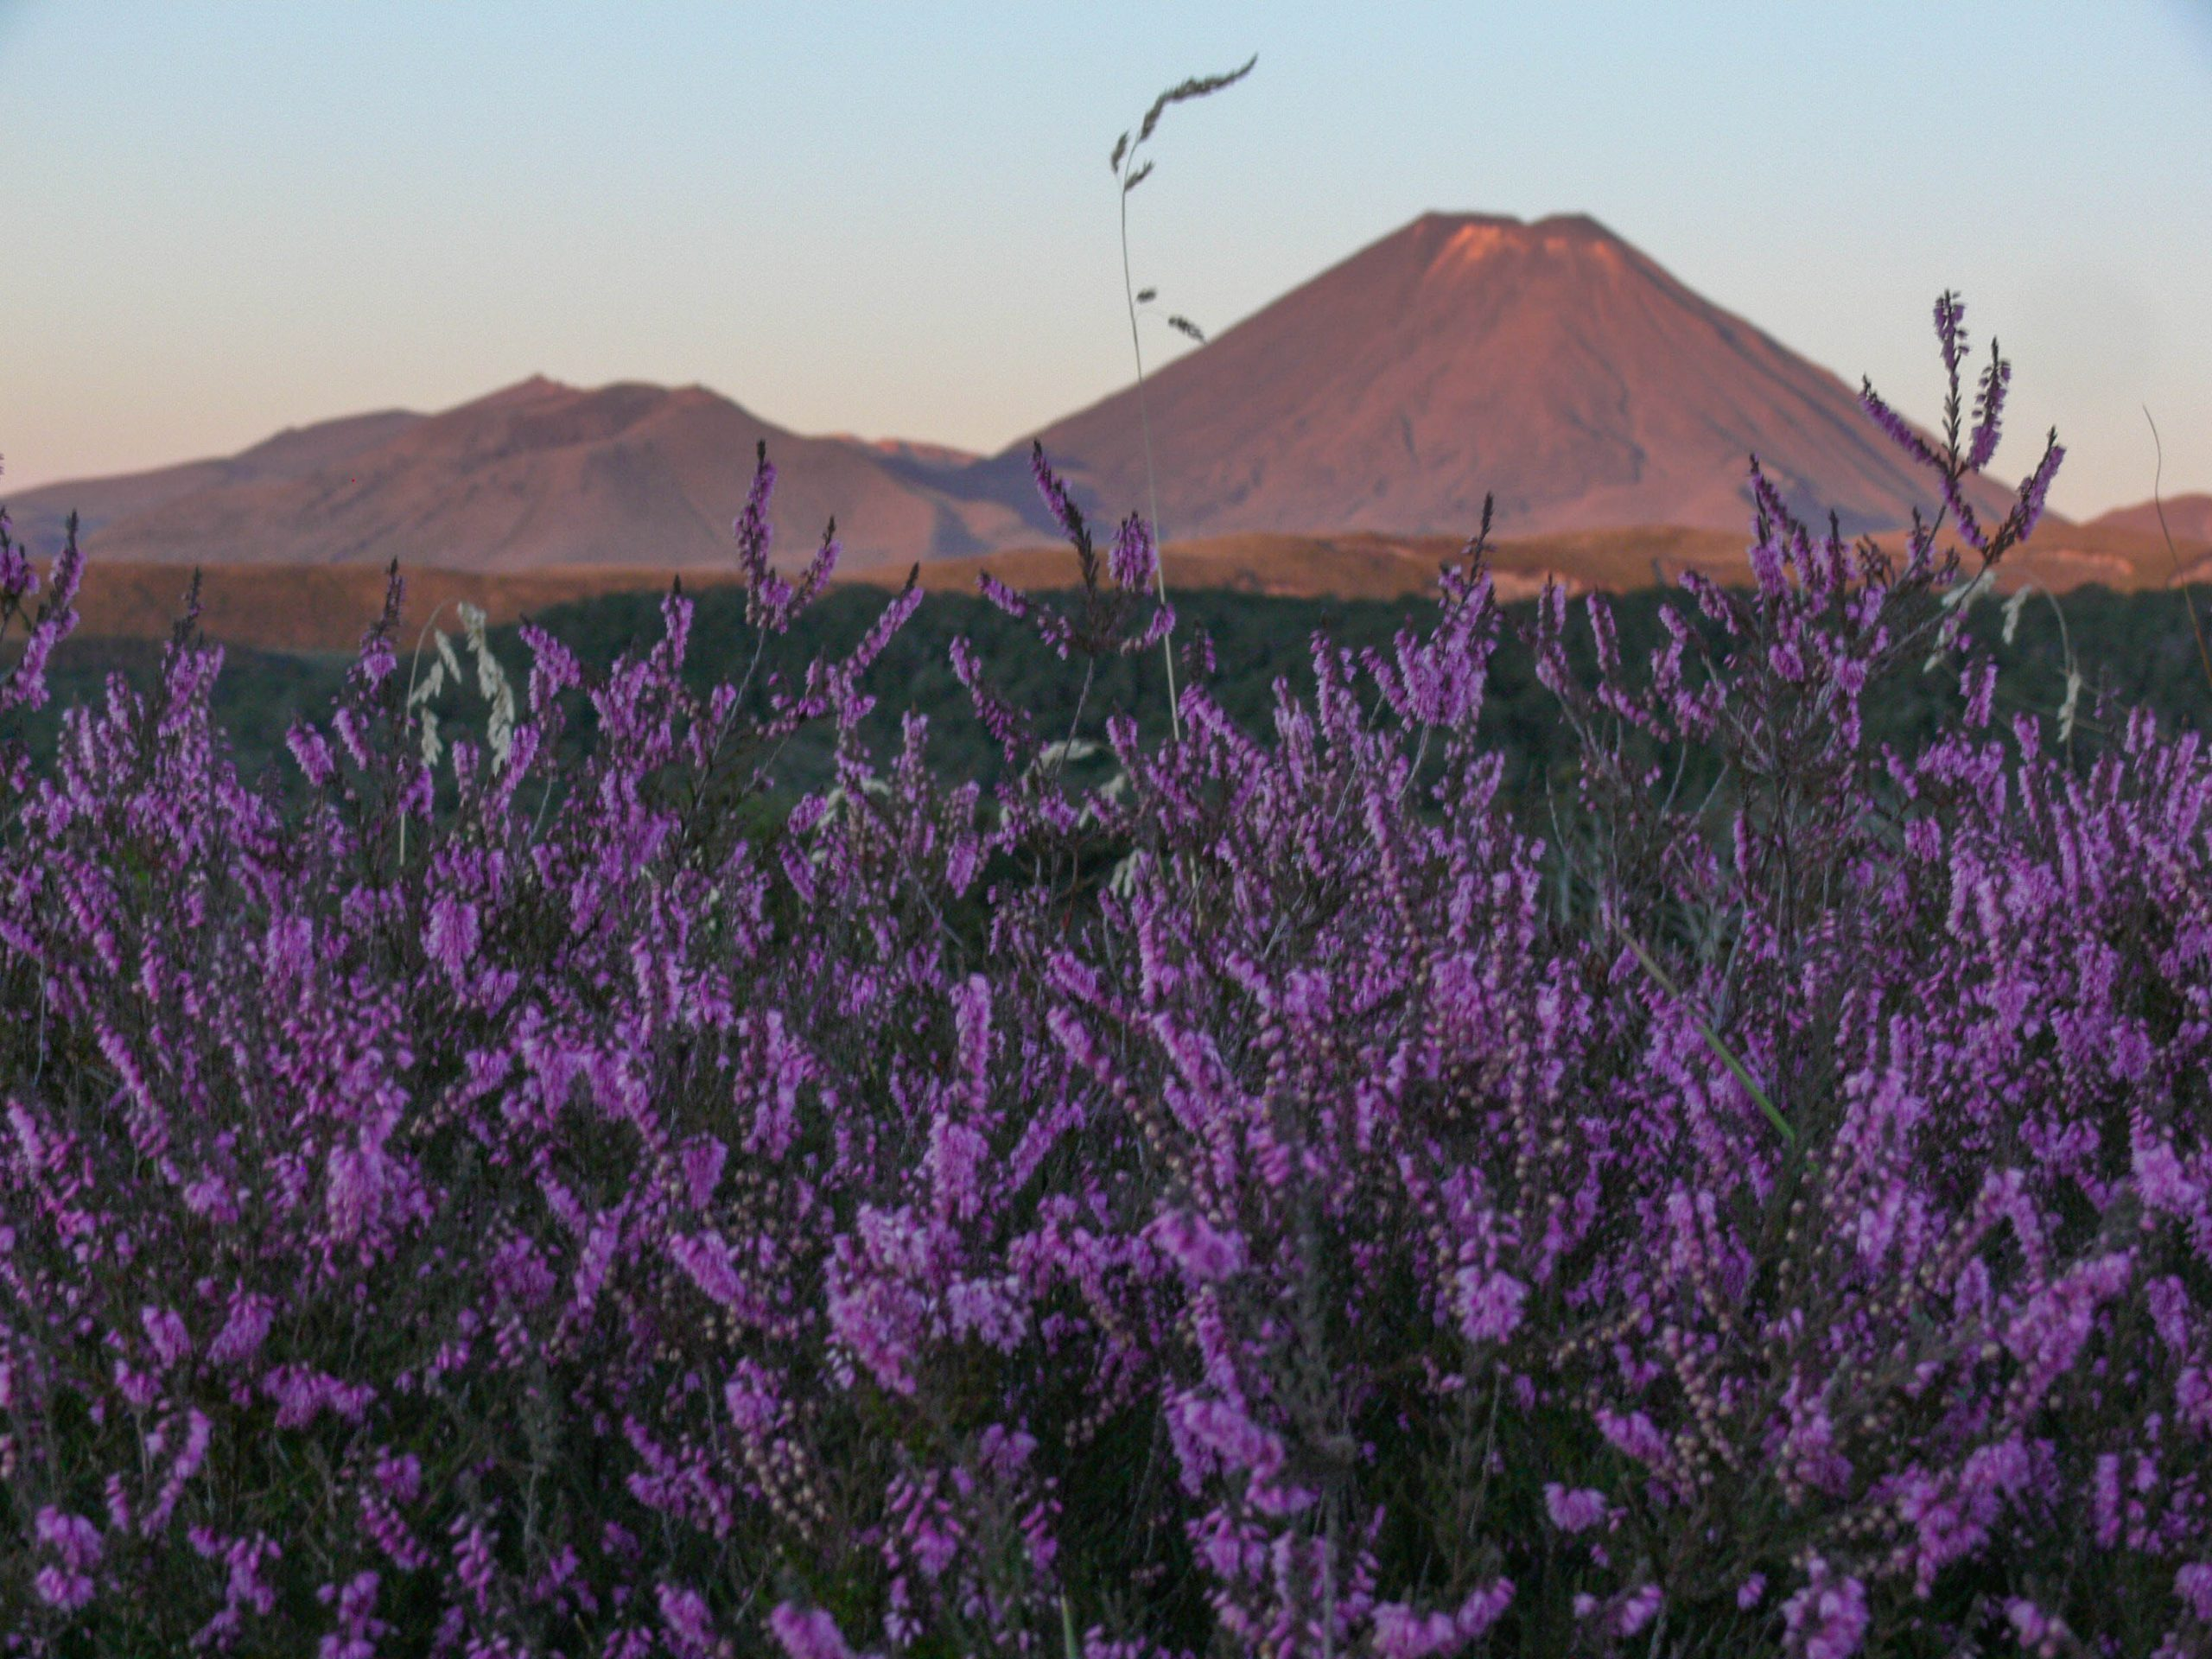 Wildflowers and Mount Ngauruhoe from the Taranki Falls track